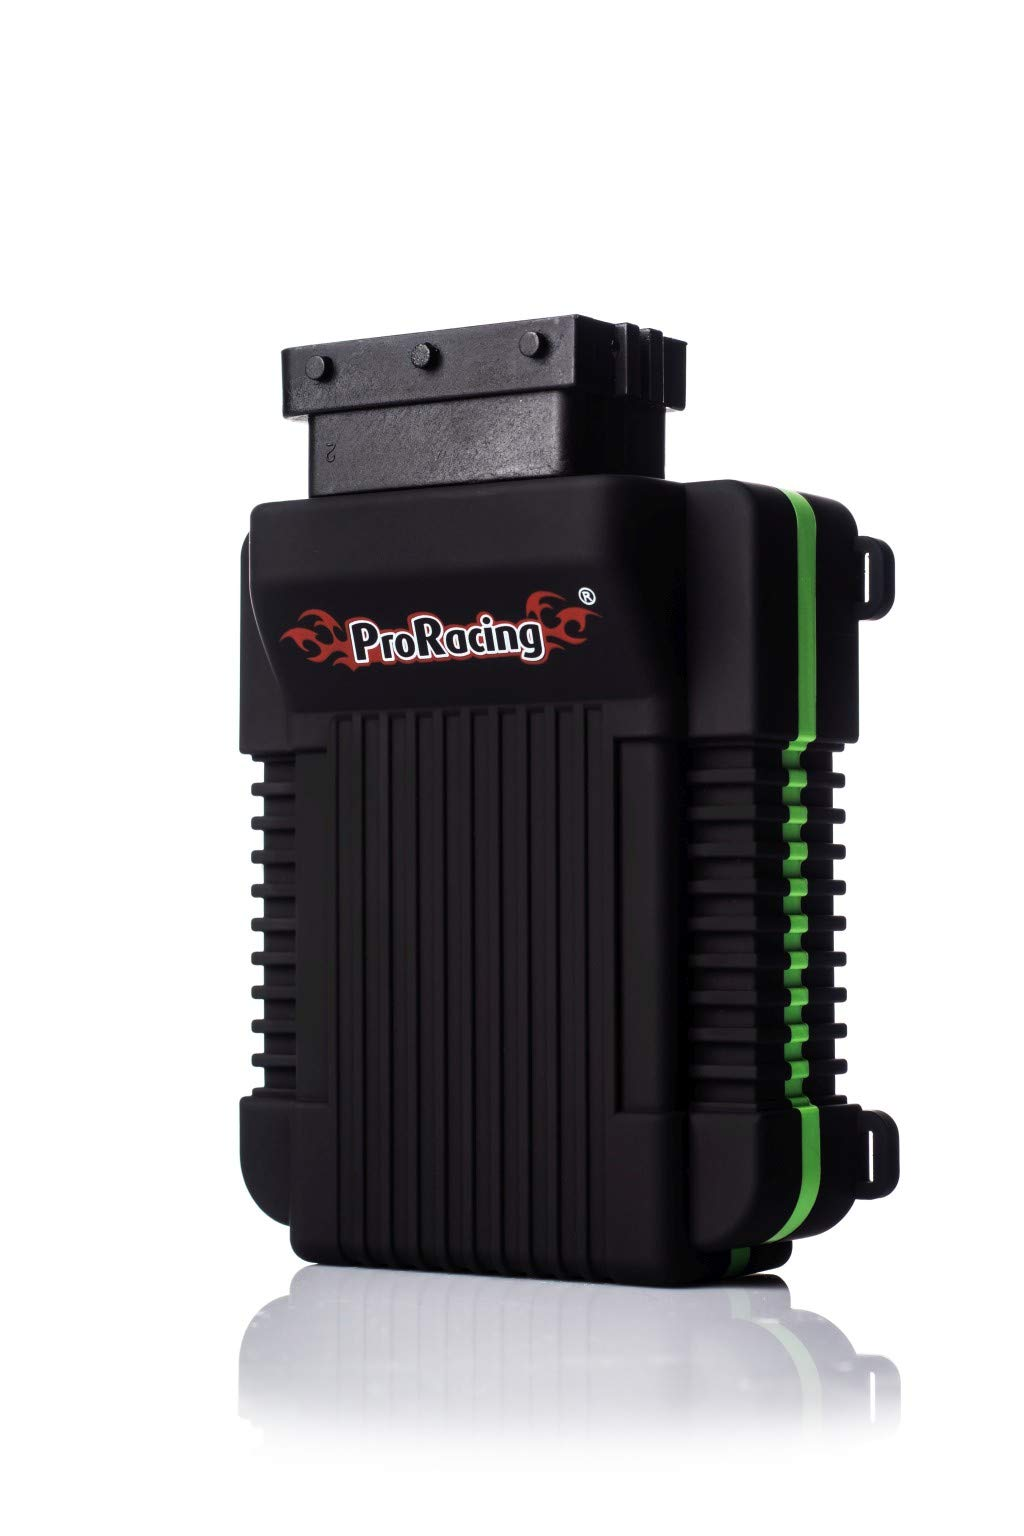 ProRacing X 30823 Chip Tuning UNICATE für P.E.U.G.E.O.T 3008 1.6 HDI 80 KW / 109 PS / 240 NM von ProRacing X